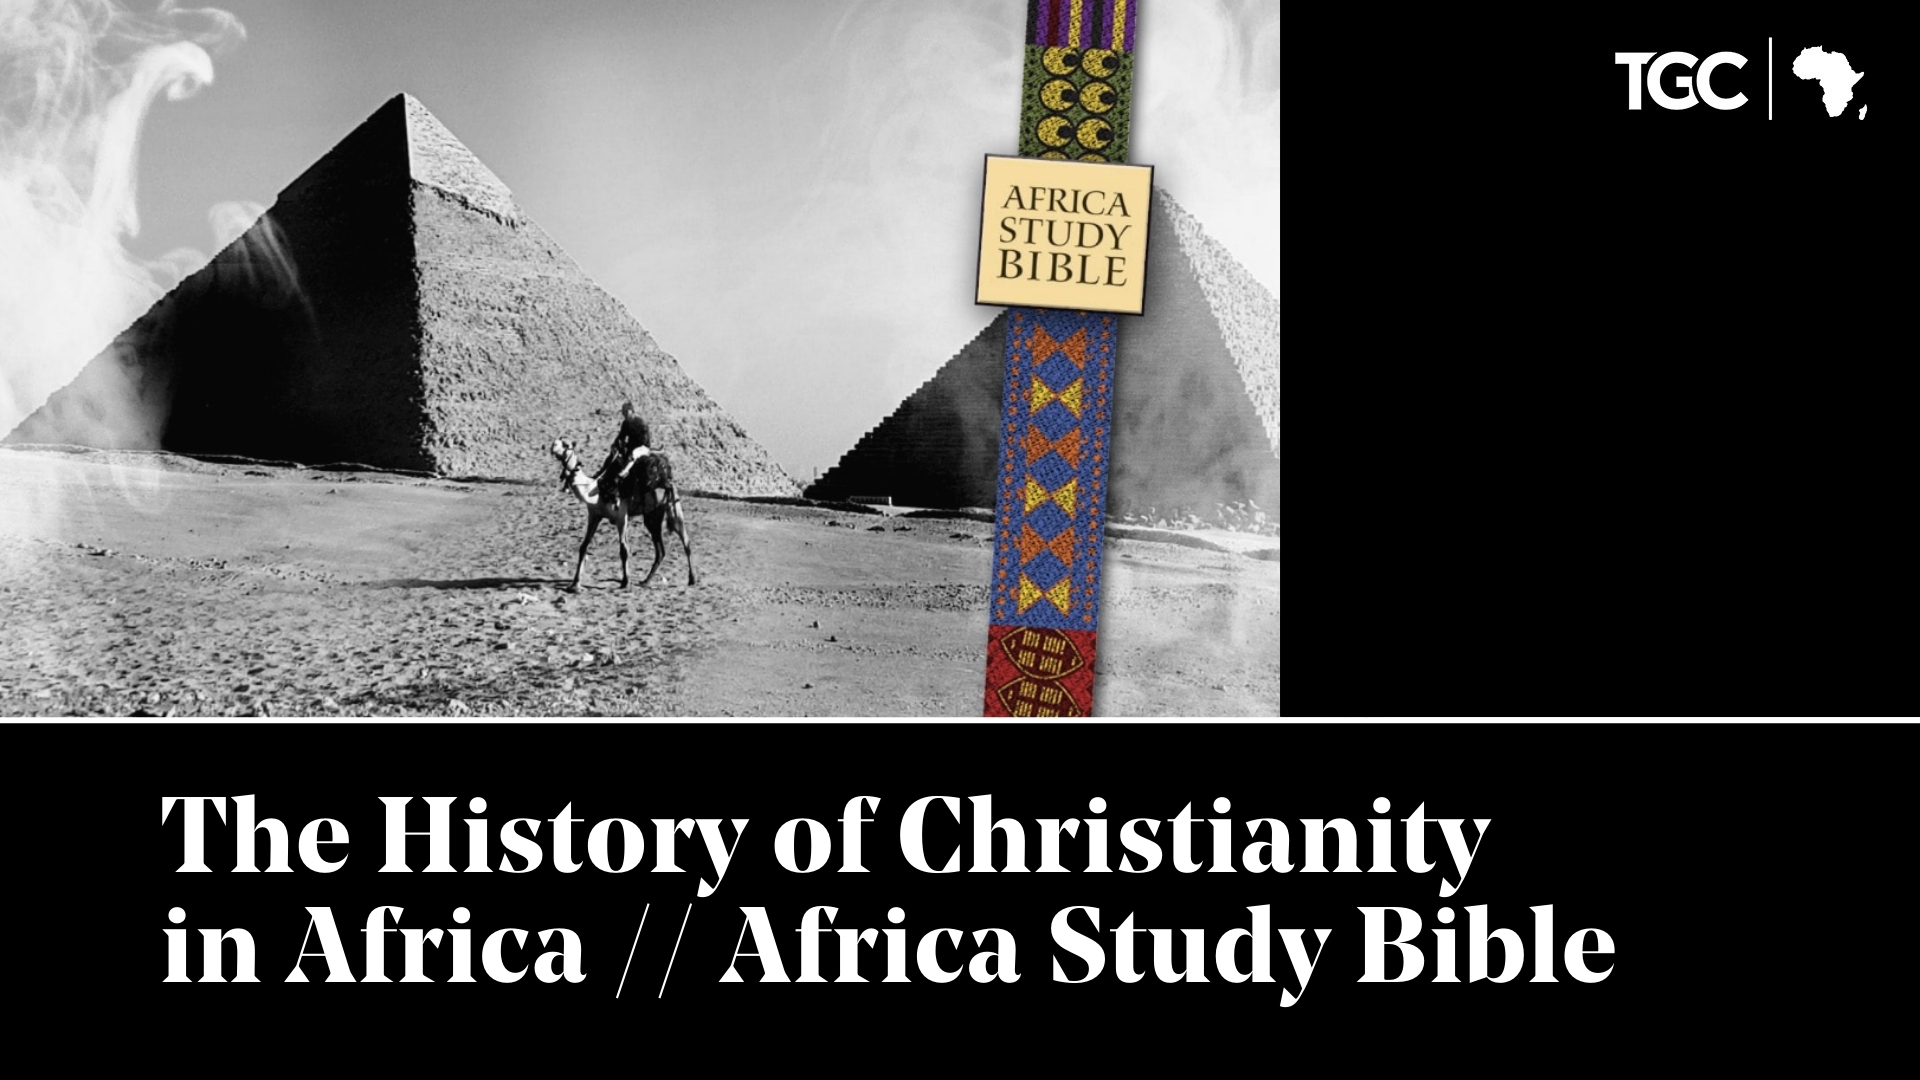 The History of Christianity in Africa // Africa Study Bible